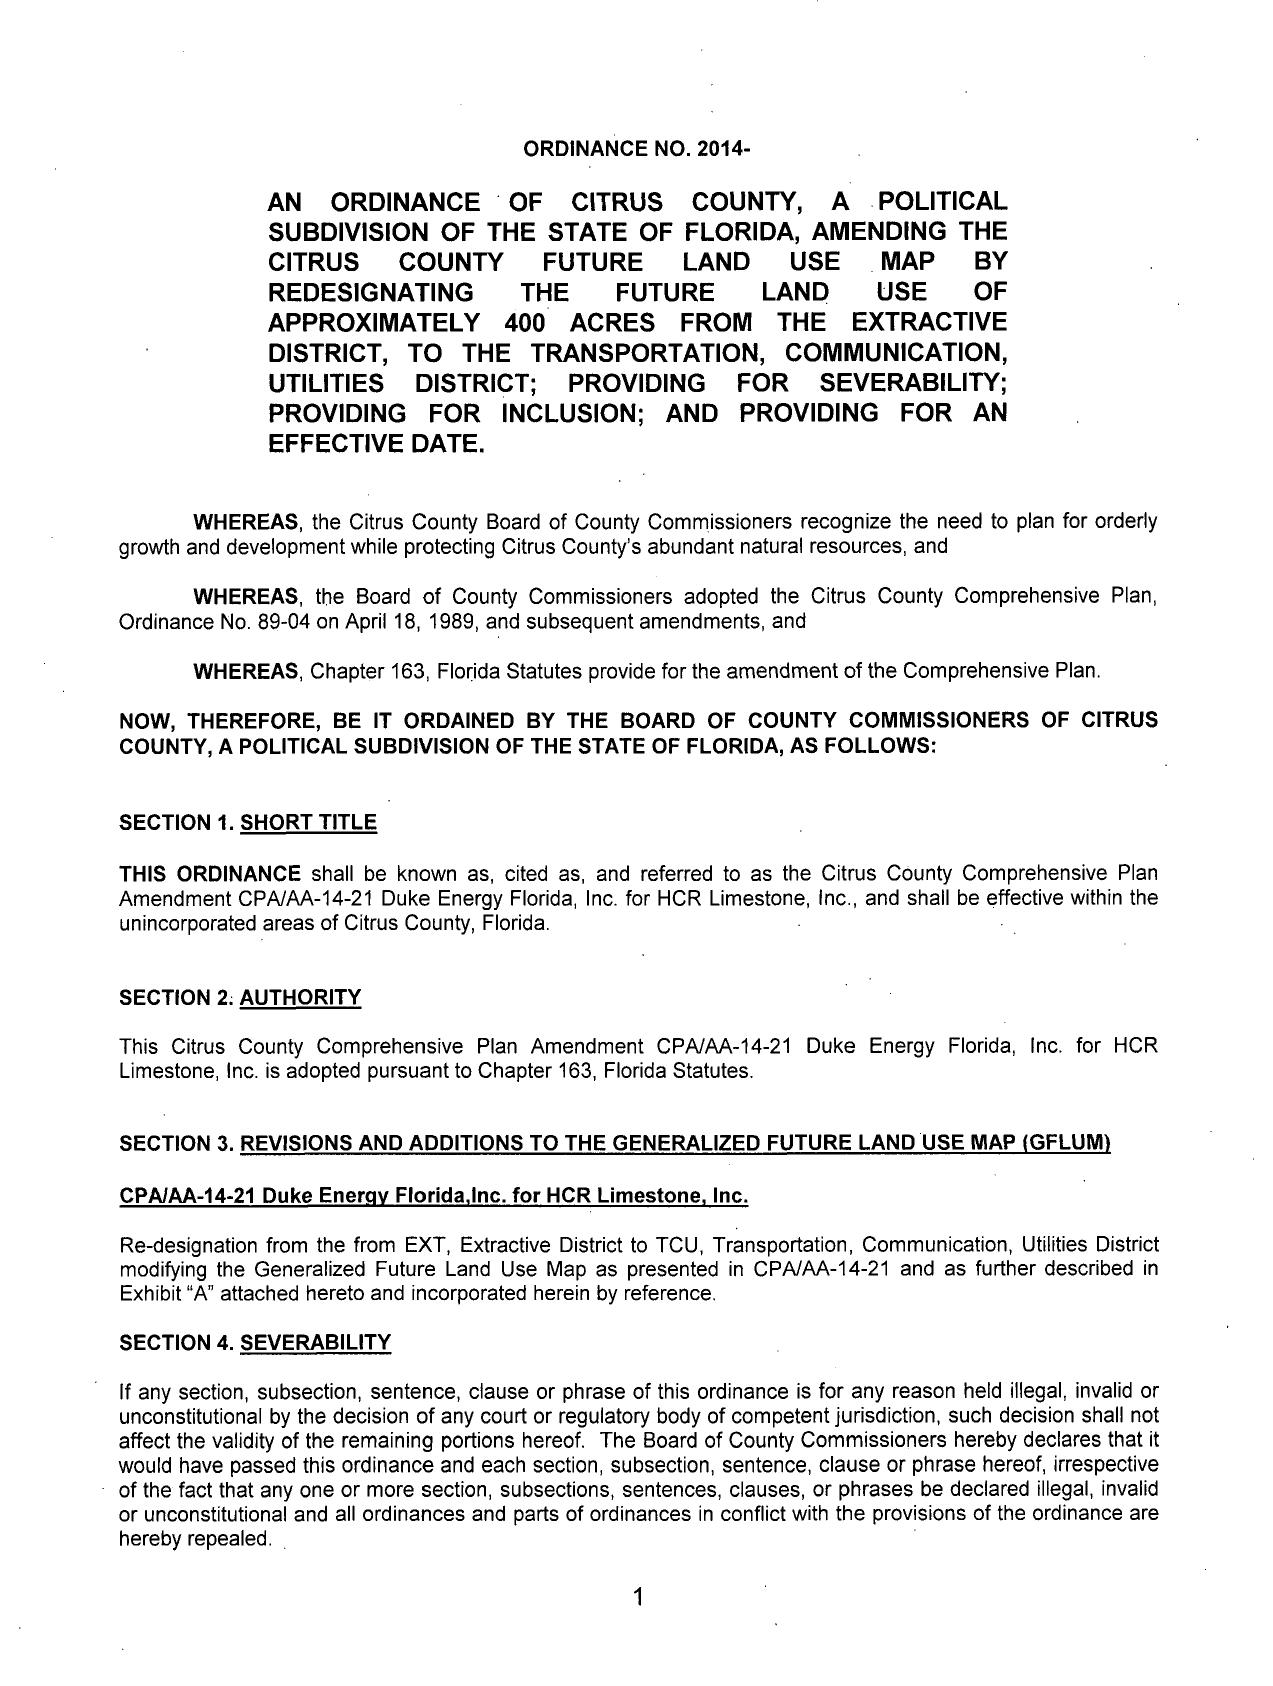 1273x1686 Ordinance for Comprehensive Plan Amendment, in Re-designation to TCU, Transportation, Communication, Utilities District, by Duke Energy, for SpectraBusters.org, 27 May 2014